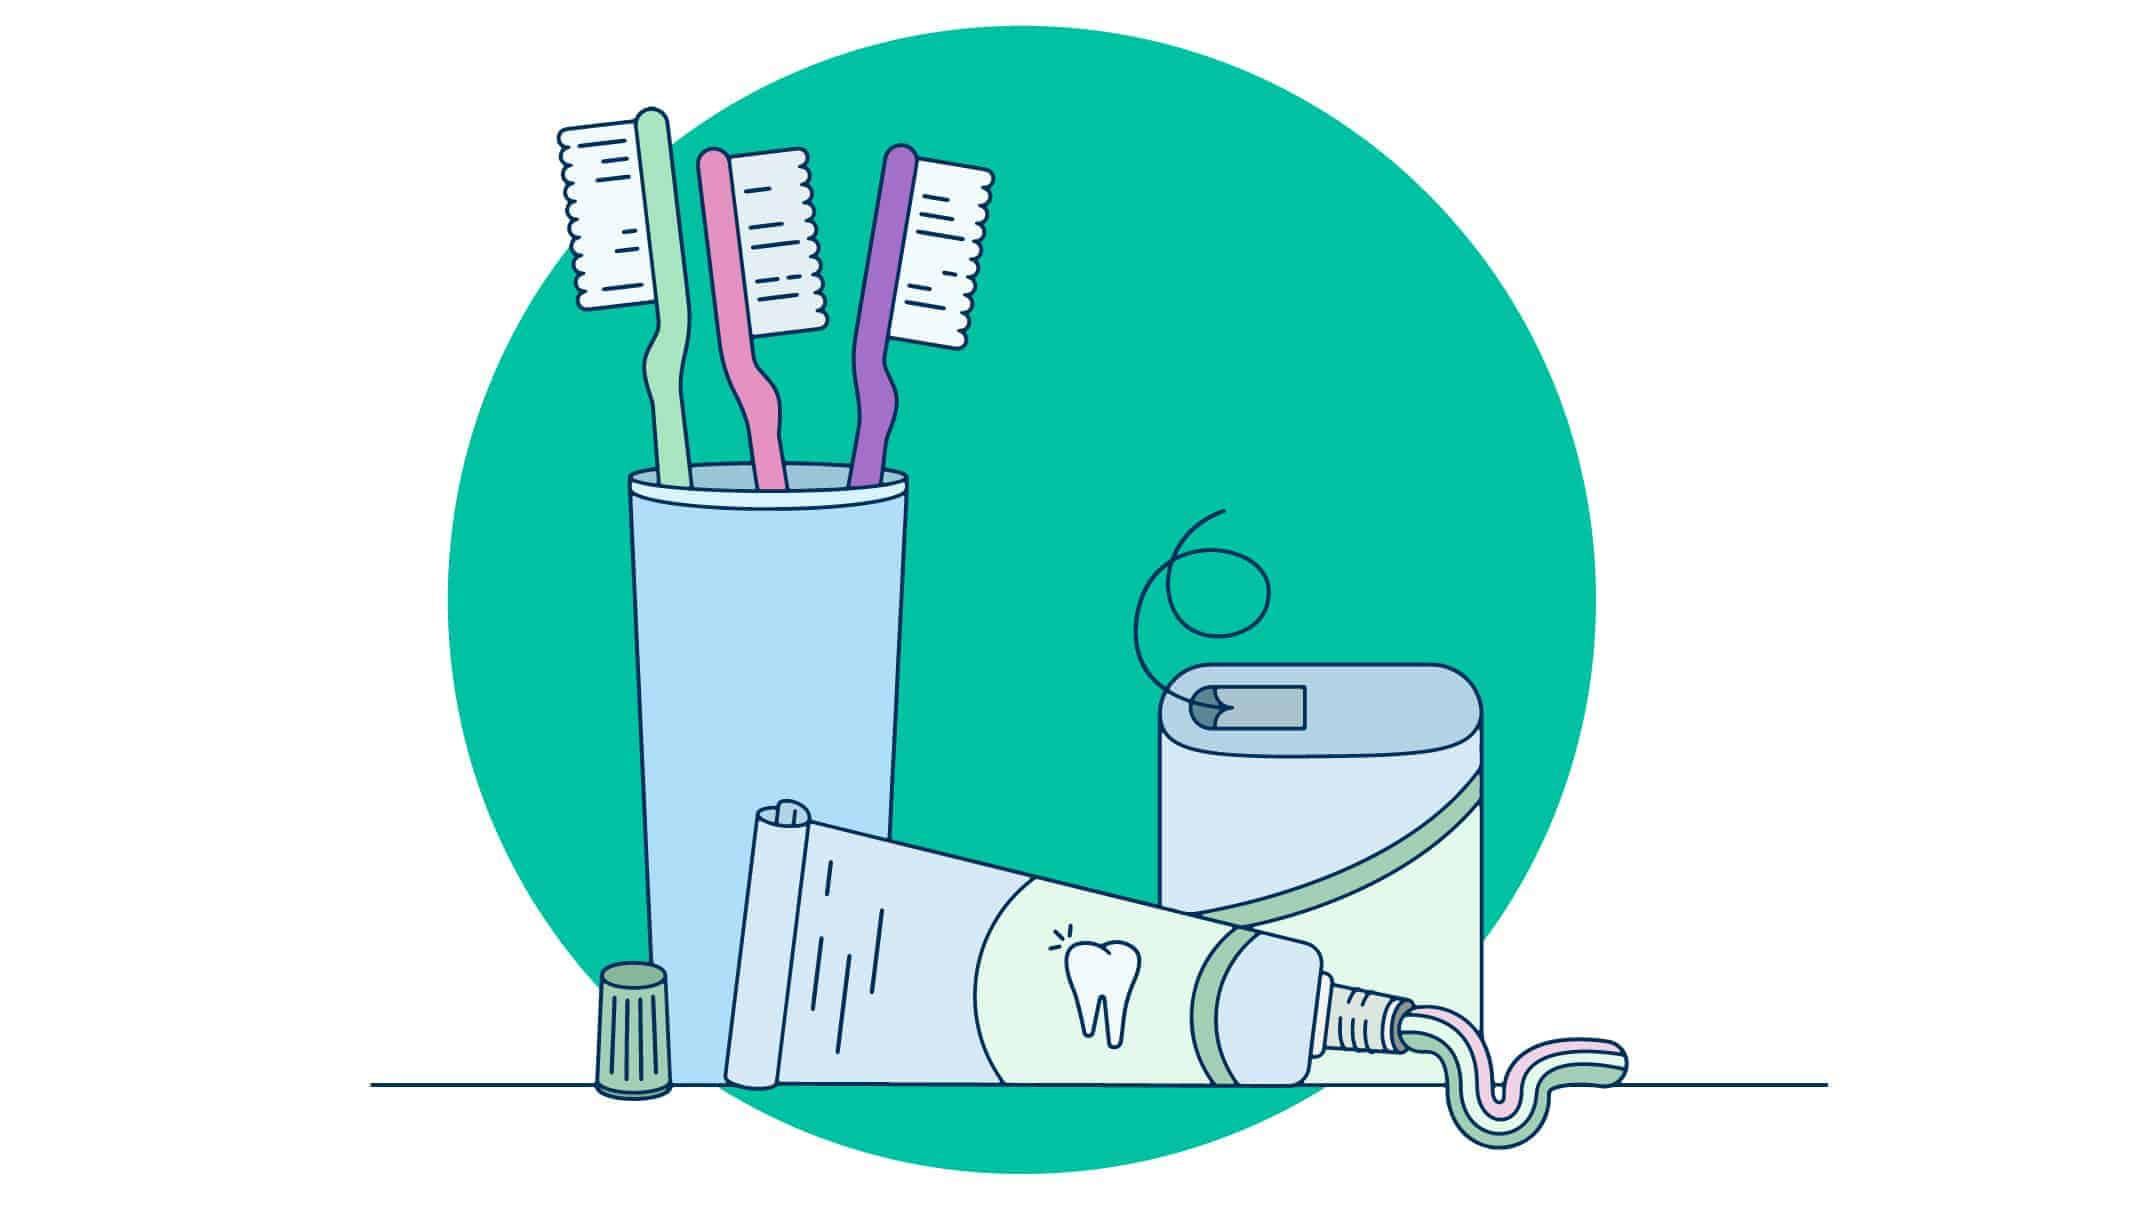 Dental Care products, Toothbrushes, Toothpaste, & Floss